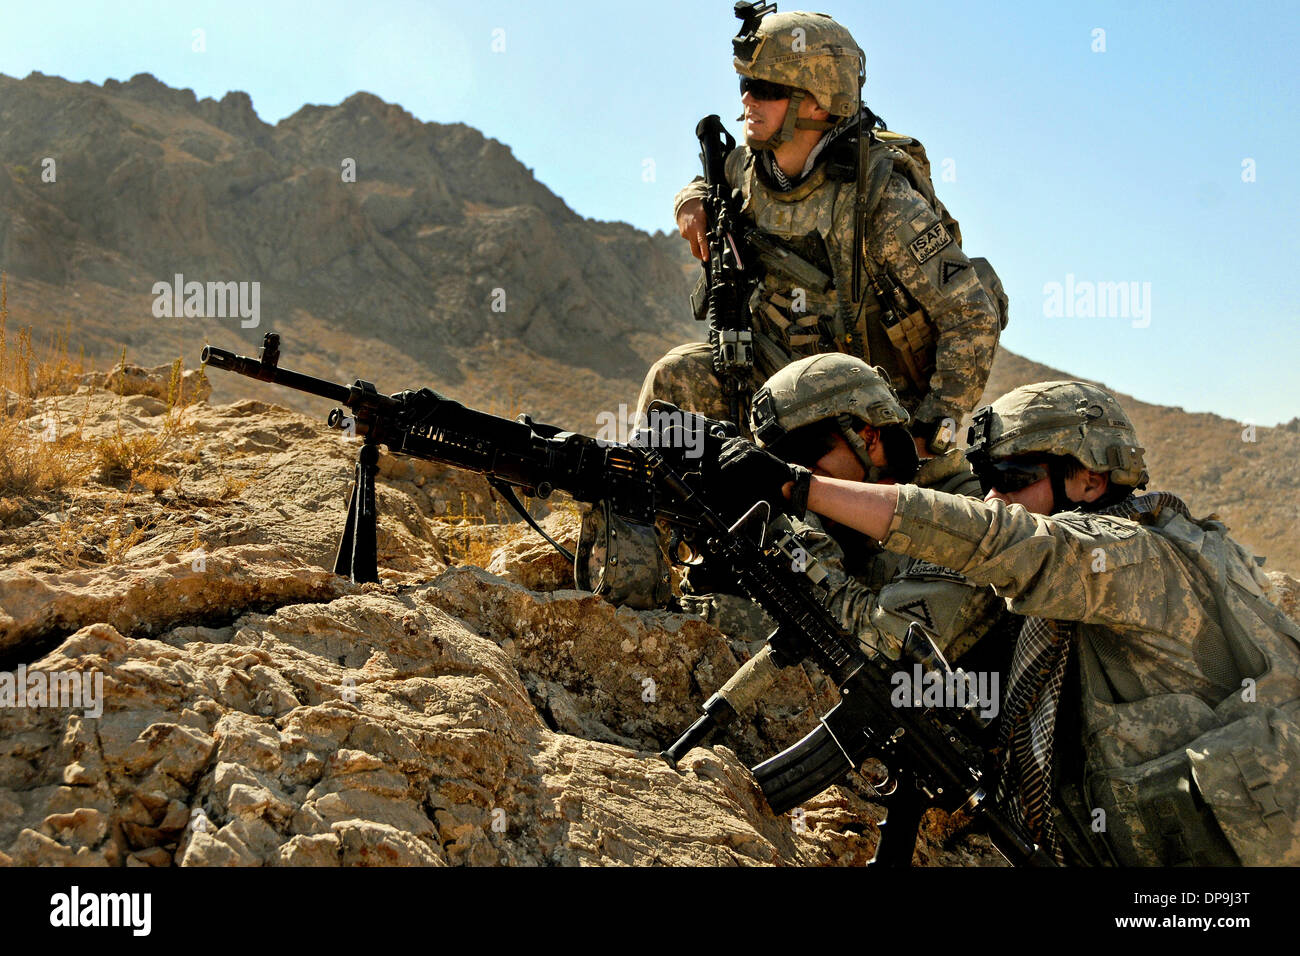 U.S. Soldiers with Charlie Company, 1st Battalion, 4th Infantry Regiment in Zabul province, Afghanistan Stock Photo